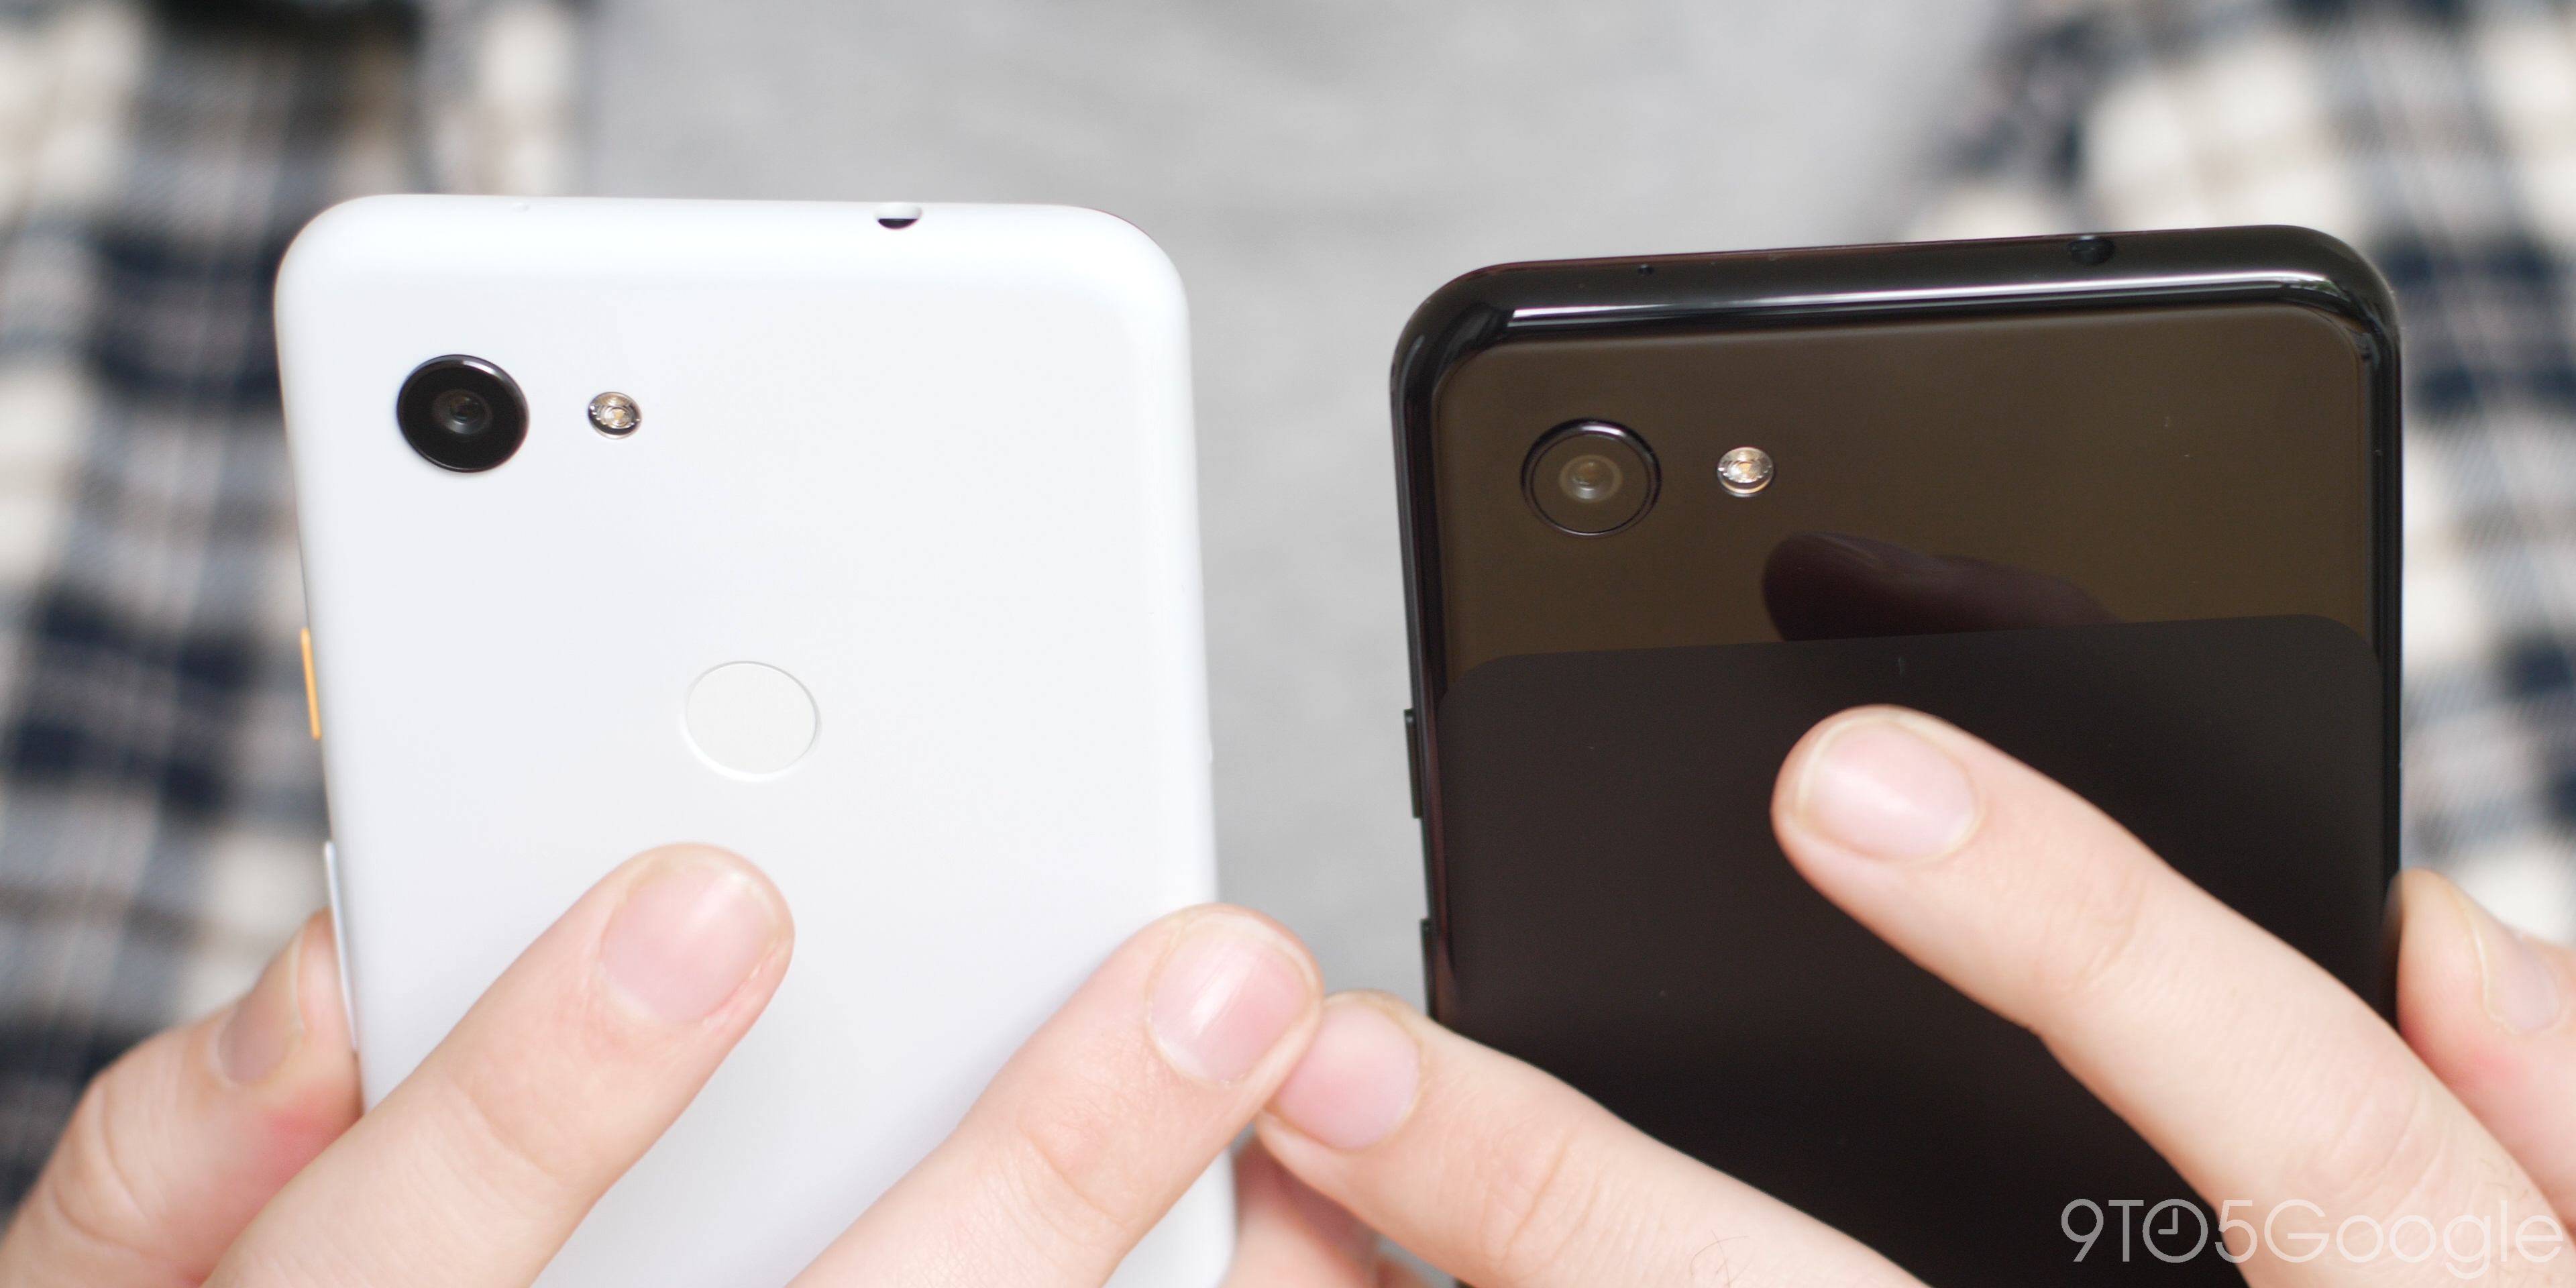 Google working on 'Fast Share,' Android Beam replacement and AirDrop competitor [Gallery]